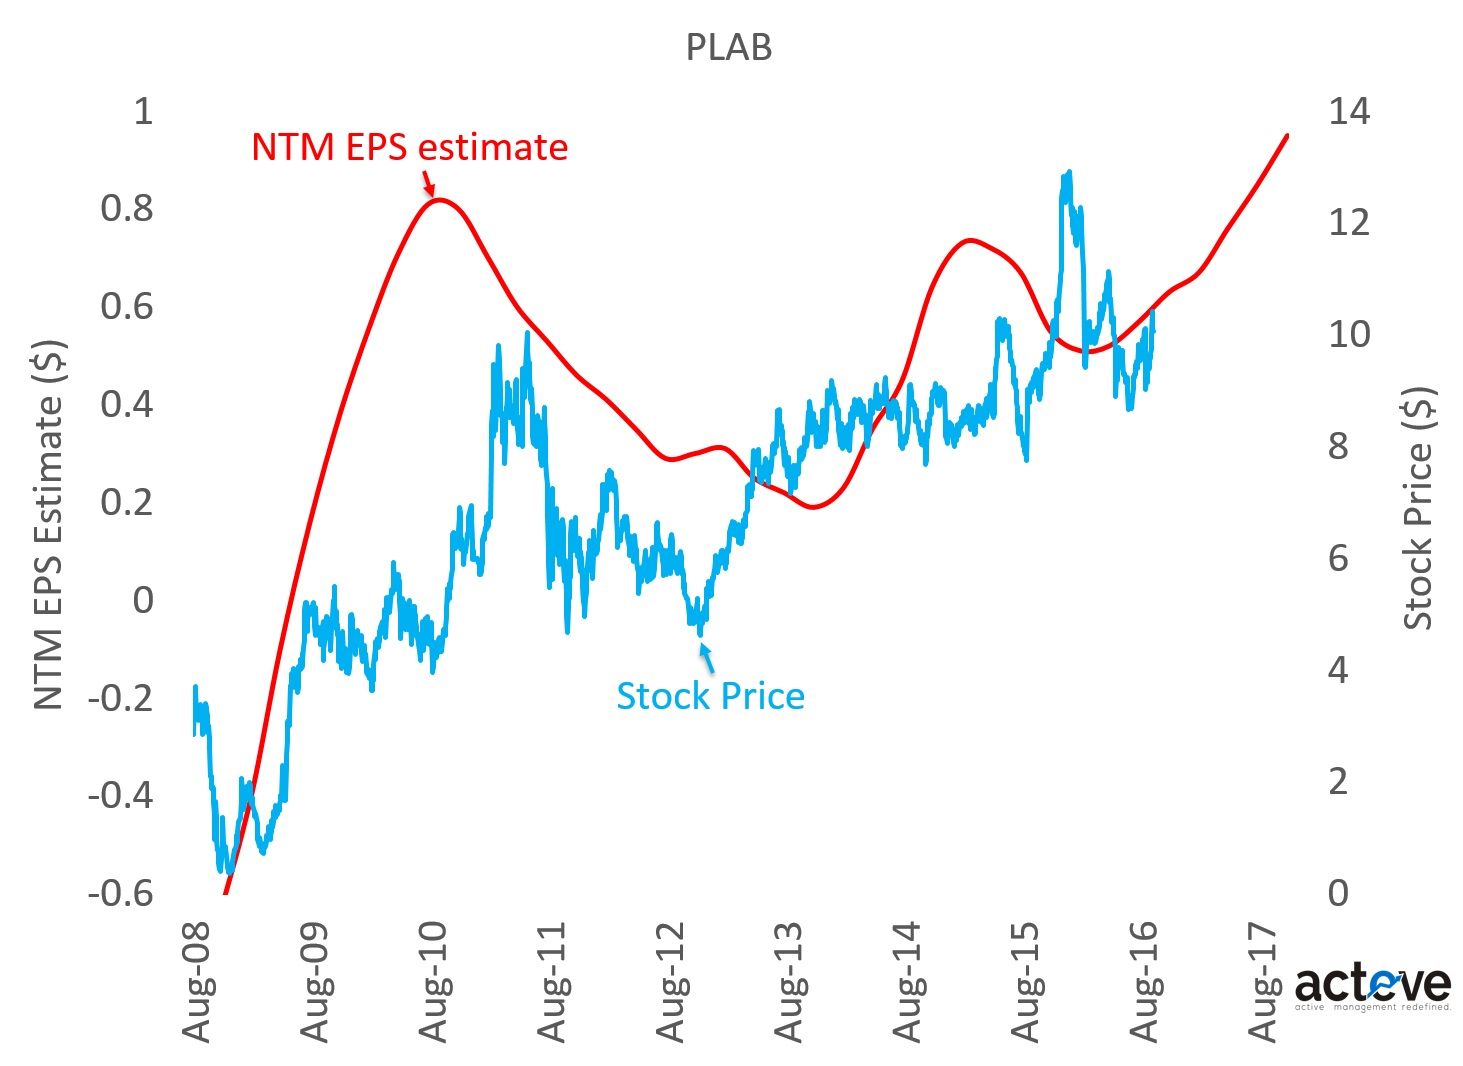 PLAB stock vs. NTM EPS